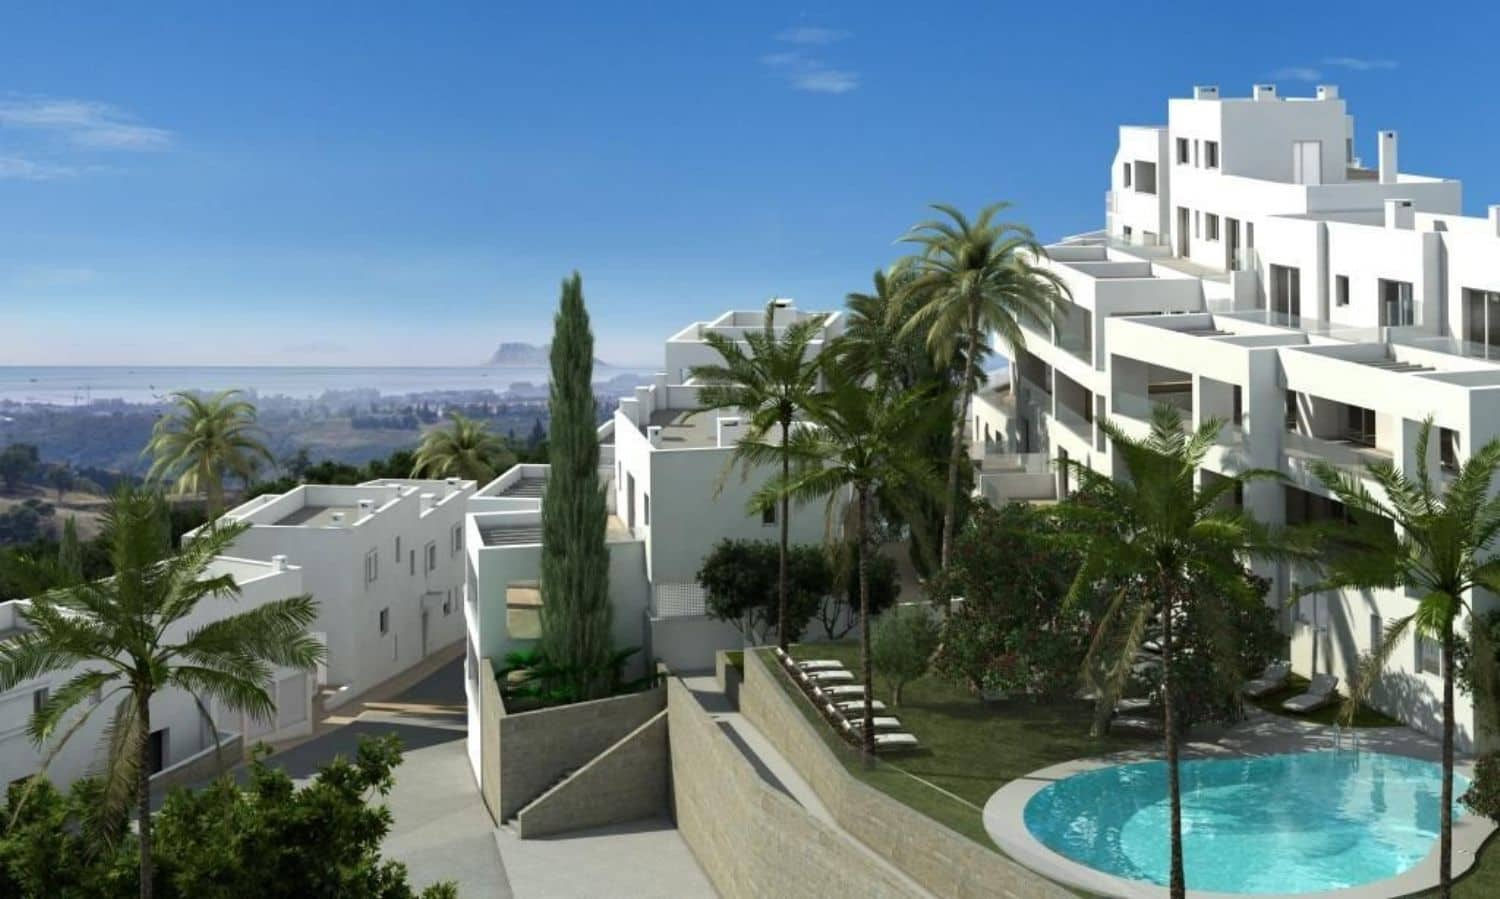 1 bedroom Apartment for sale in Marbella with pool garage - € 190,000 (Ref: 4242008)